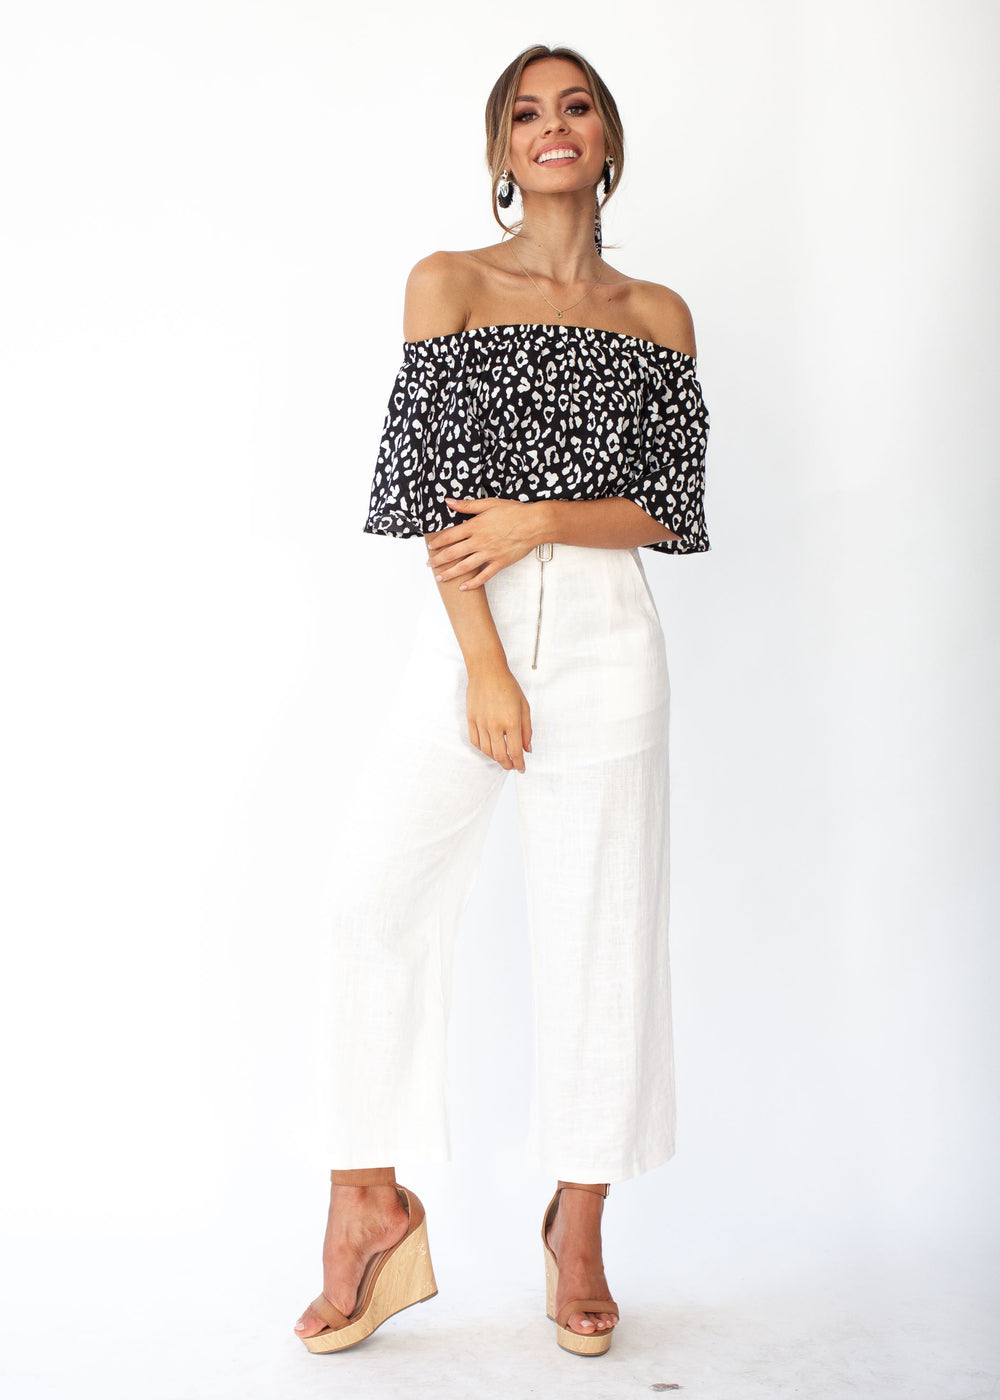 Women's Dare To Try Off Shoulder Top - Black White Print